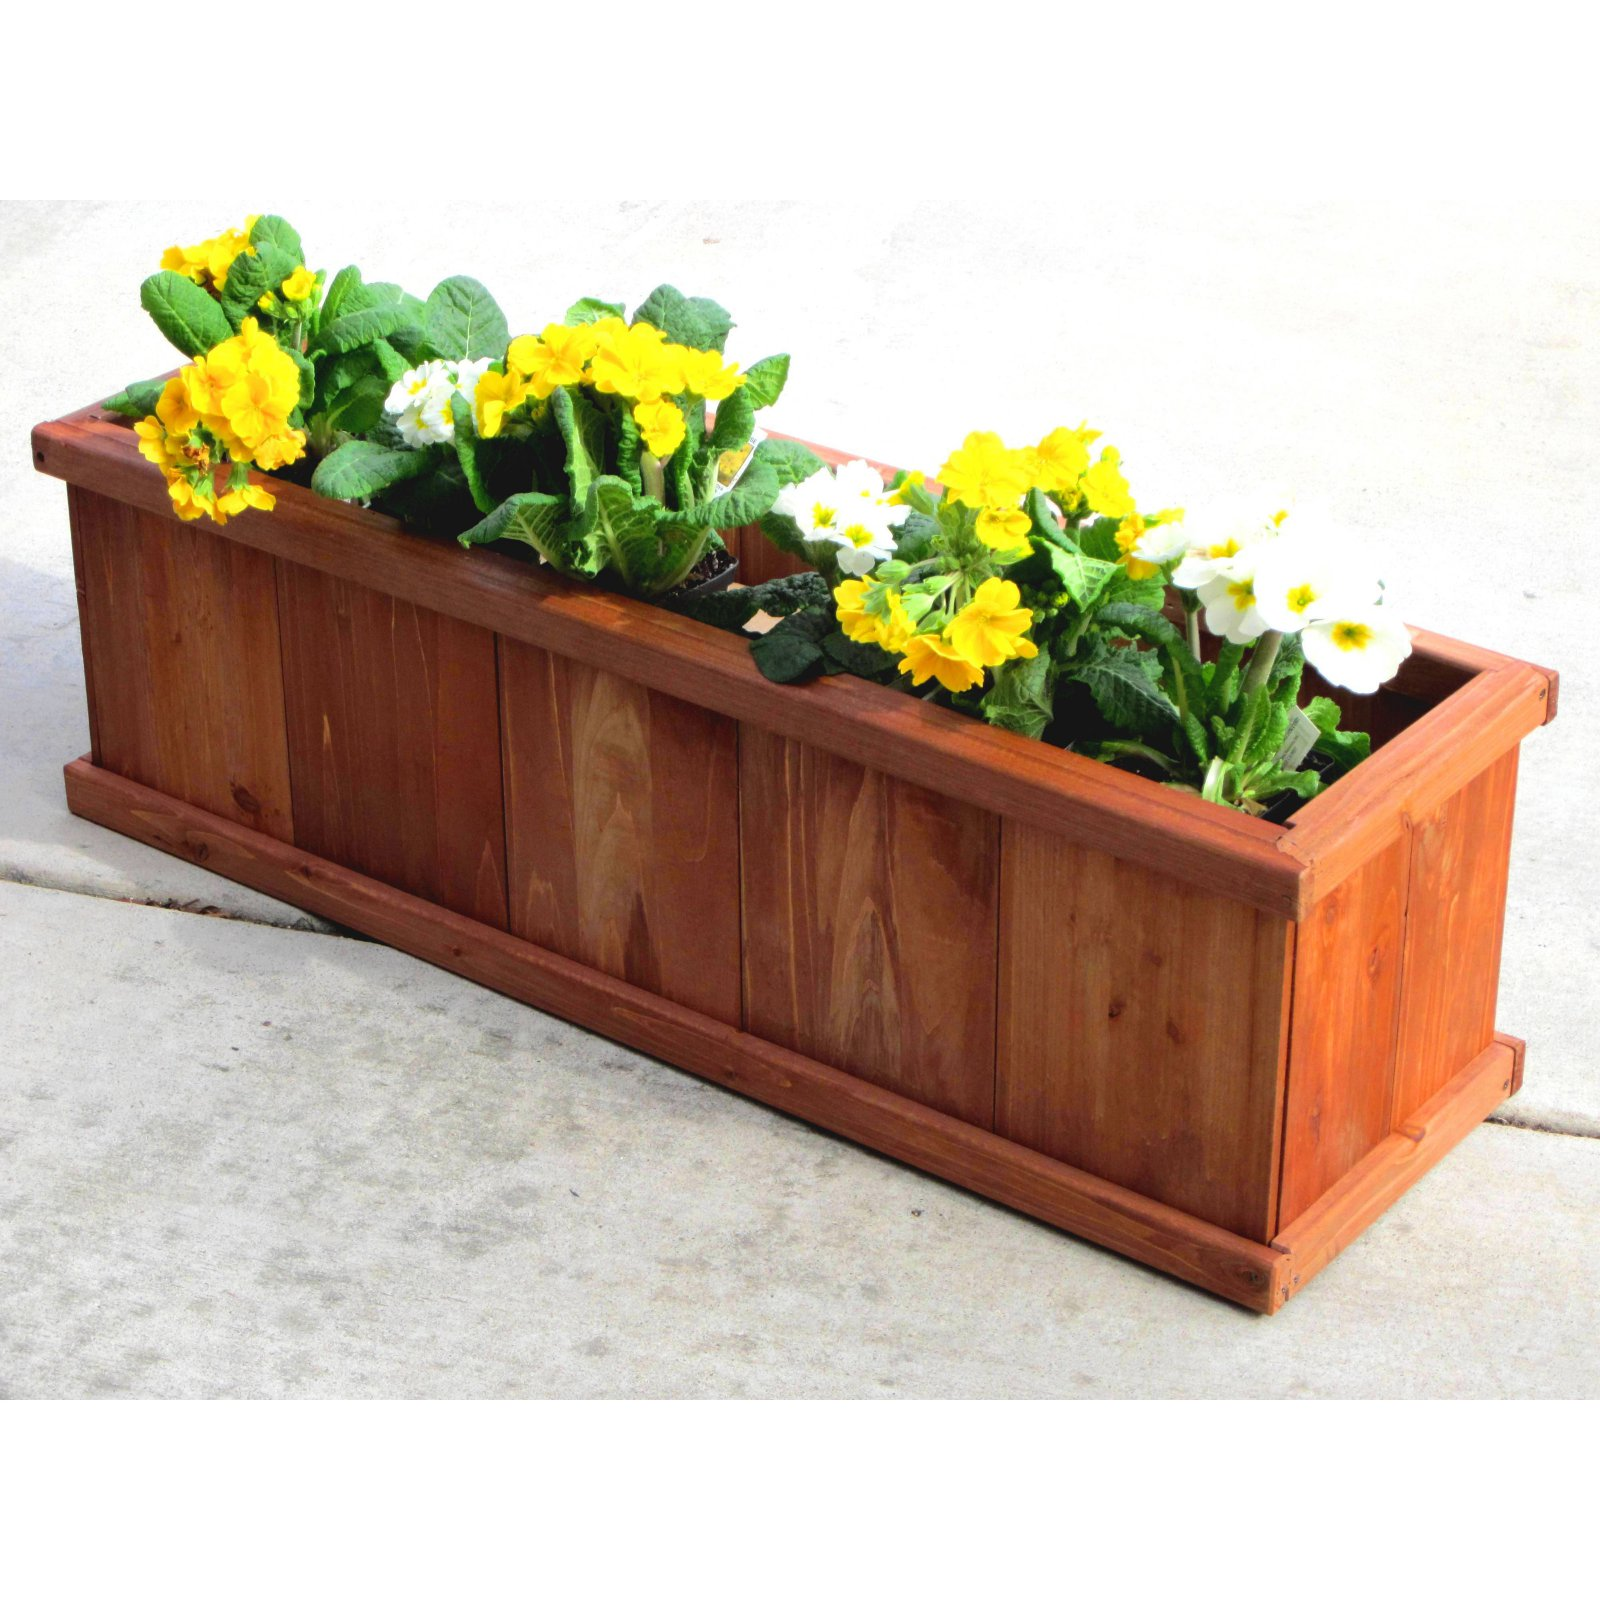 Greenstone Robusto Rectangular Cedar Planter Walmart Com